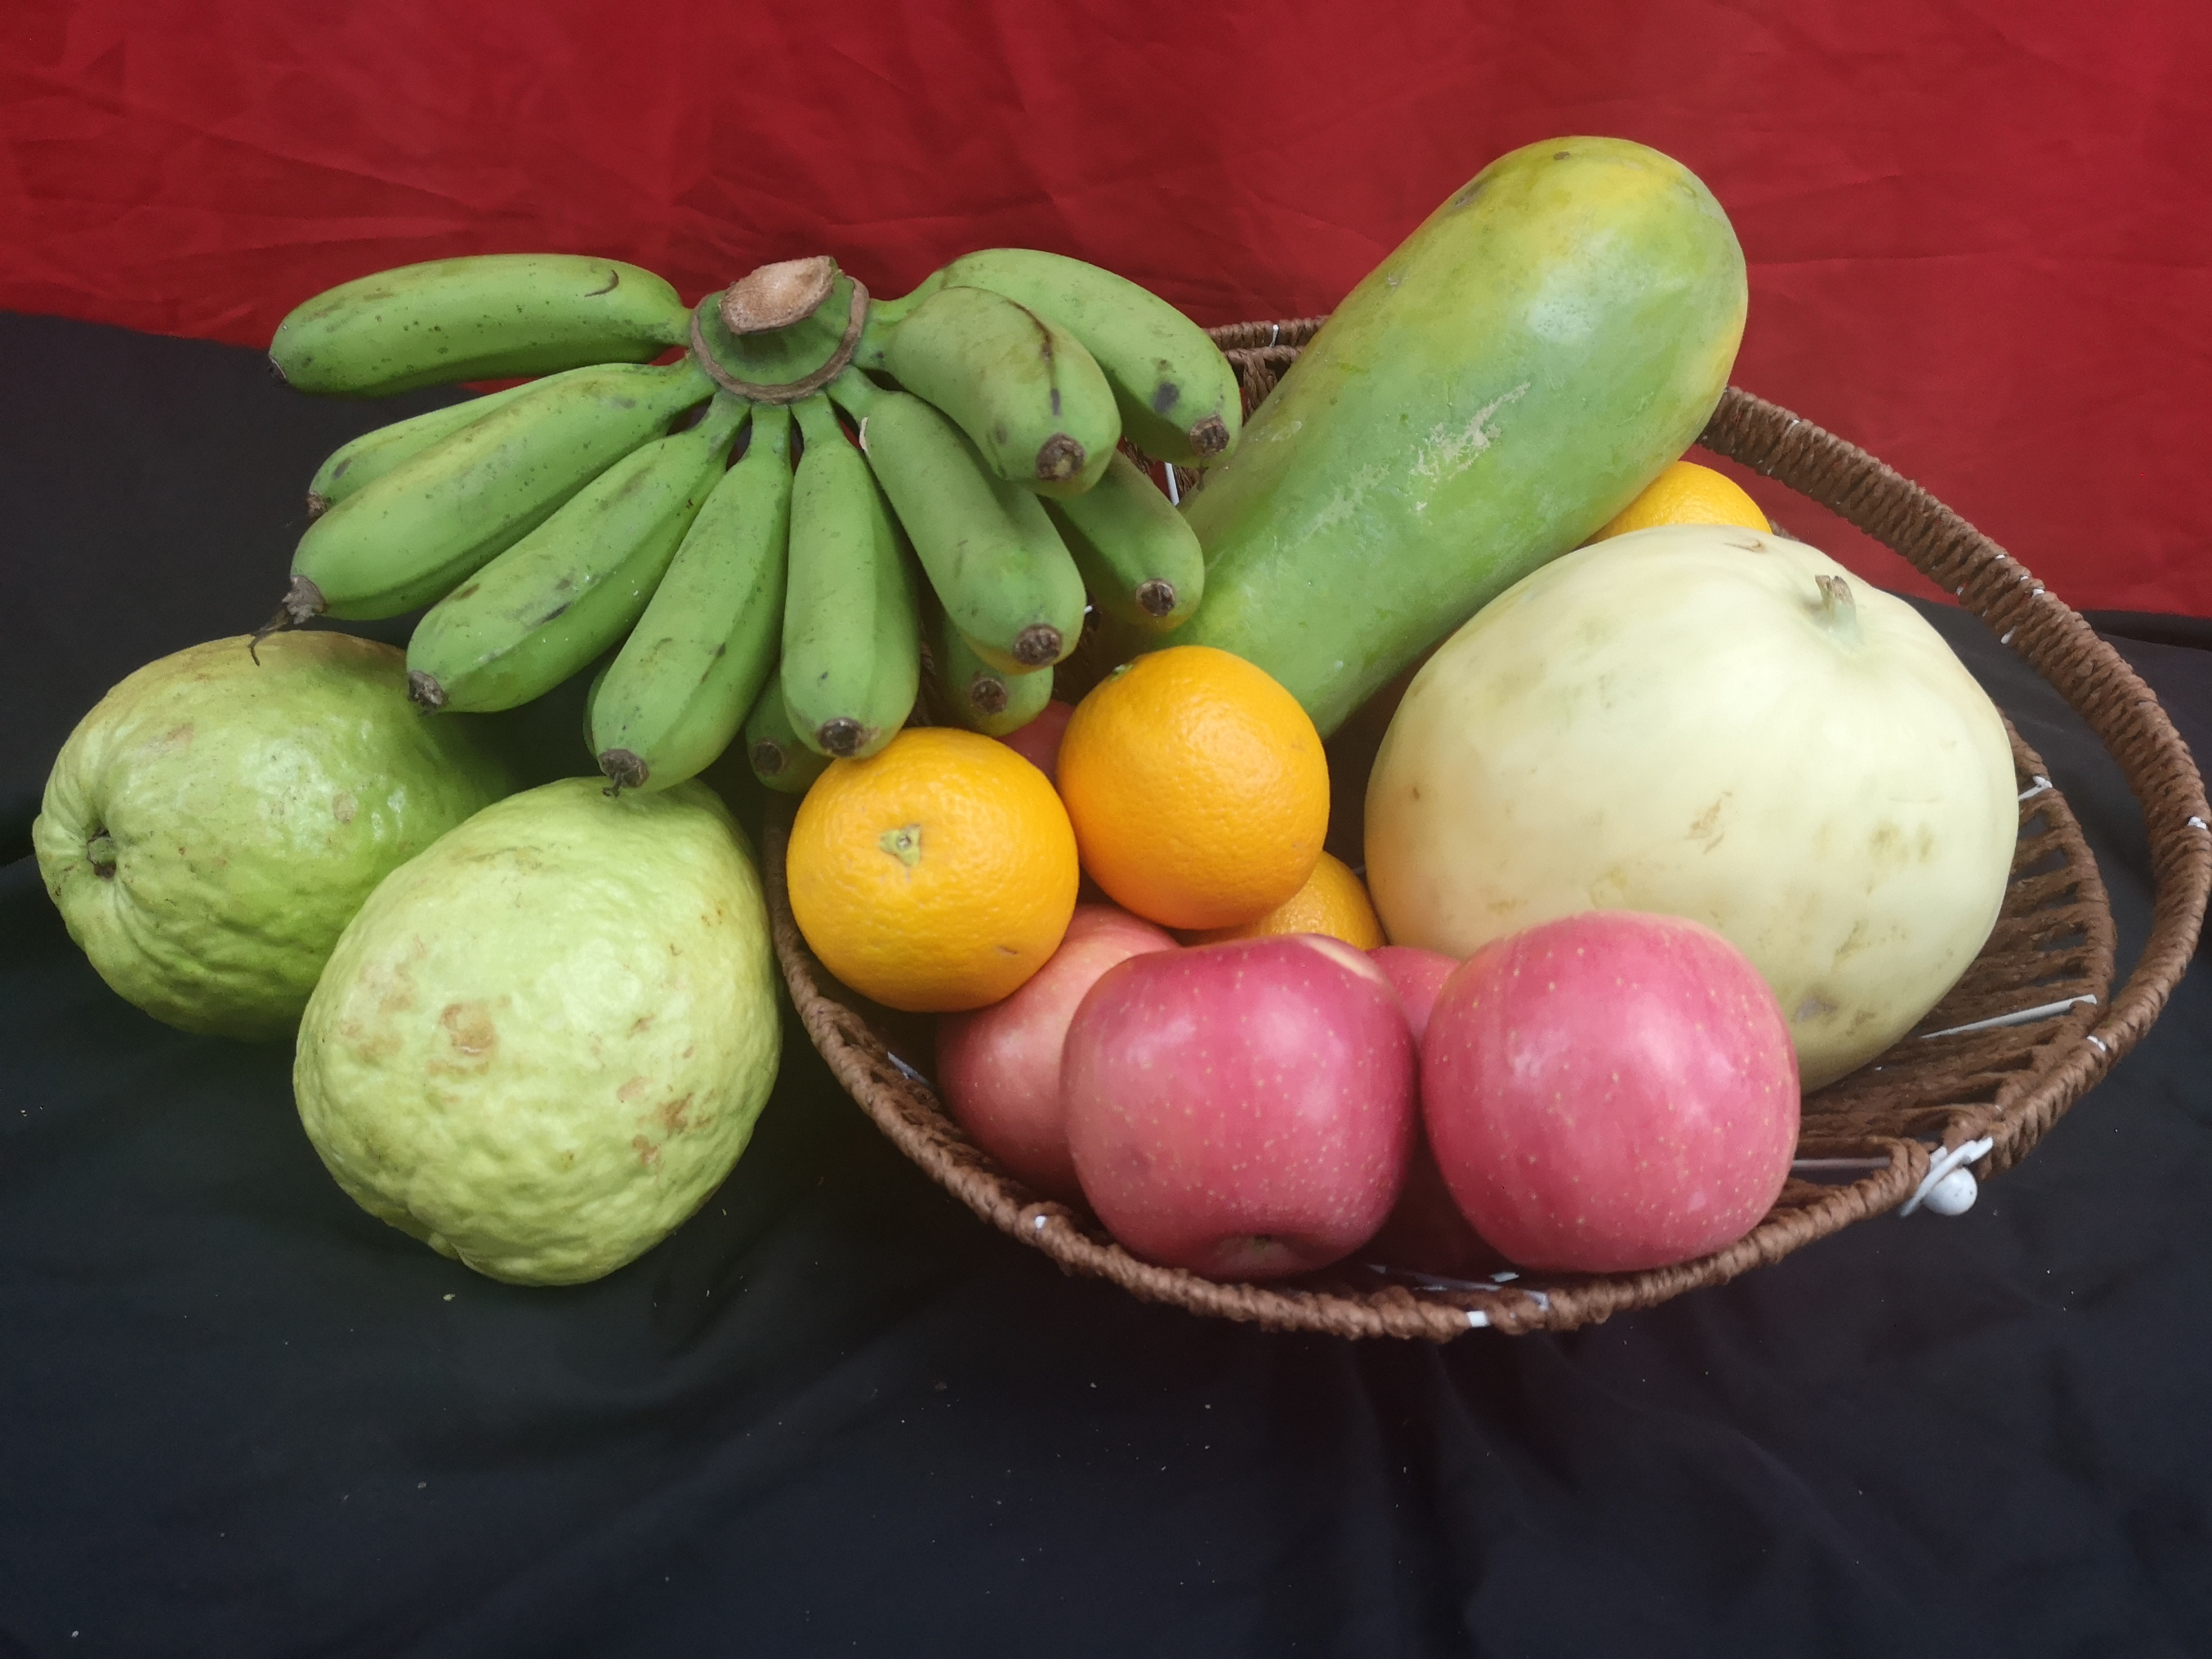 Asia fruit vege